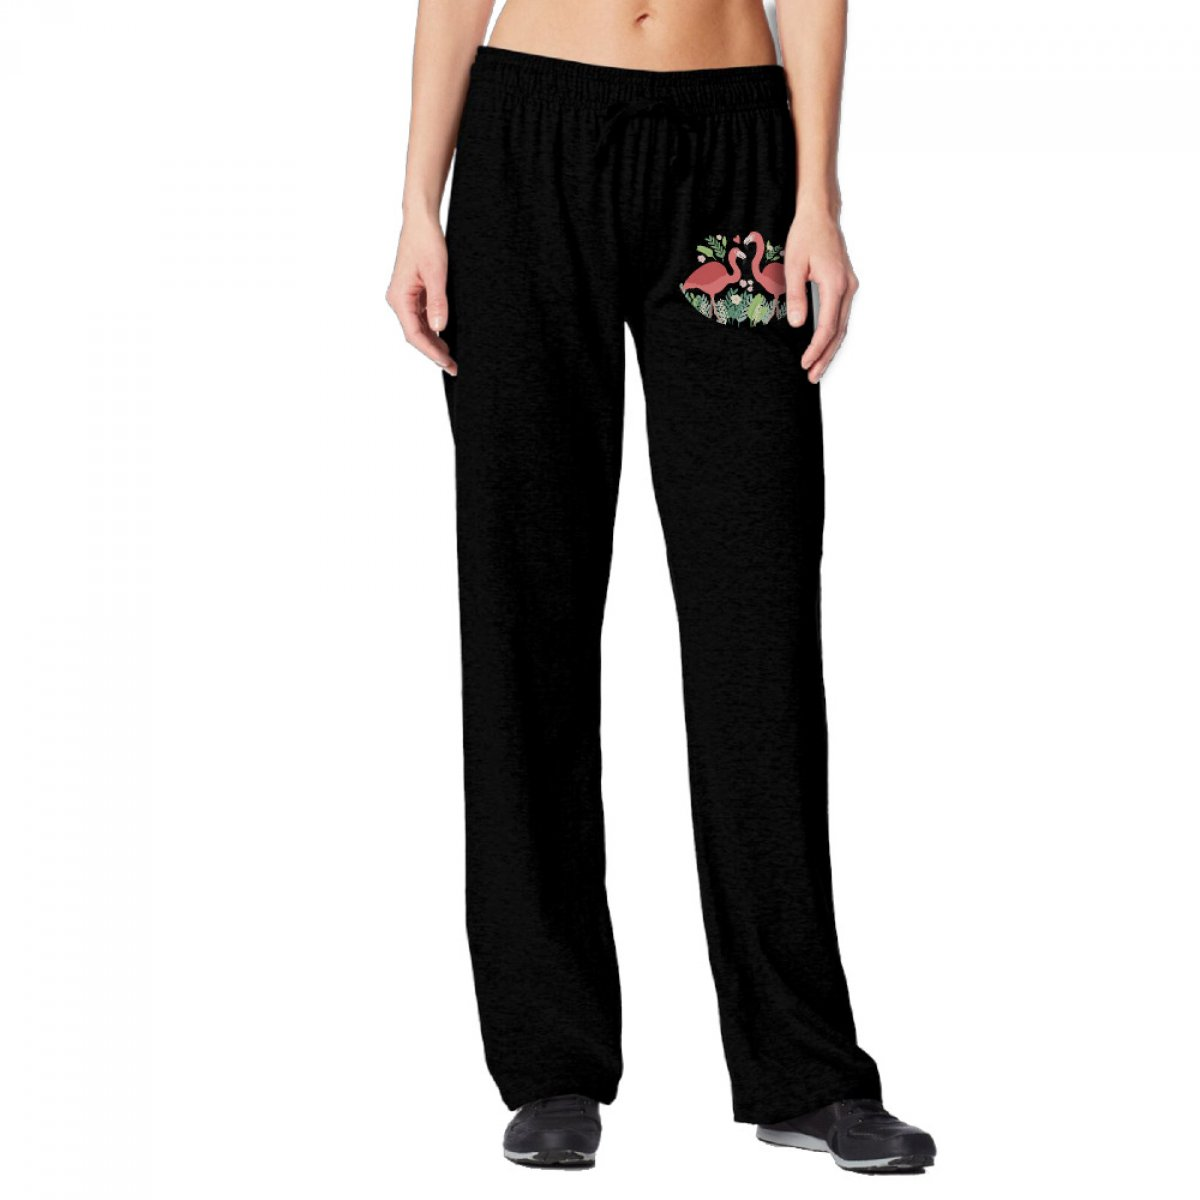 High Quality Jogging Pants Design Promotion-Shop for High Quality ...